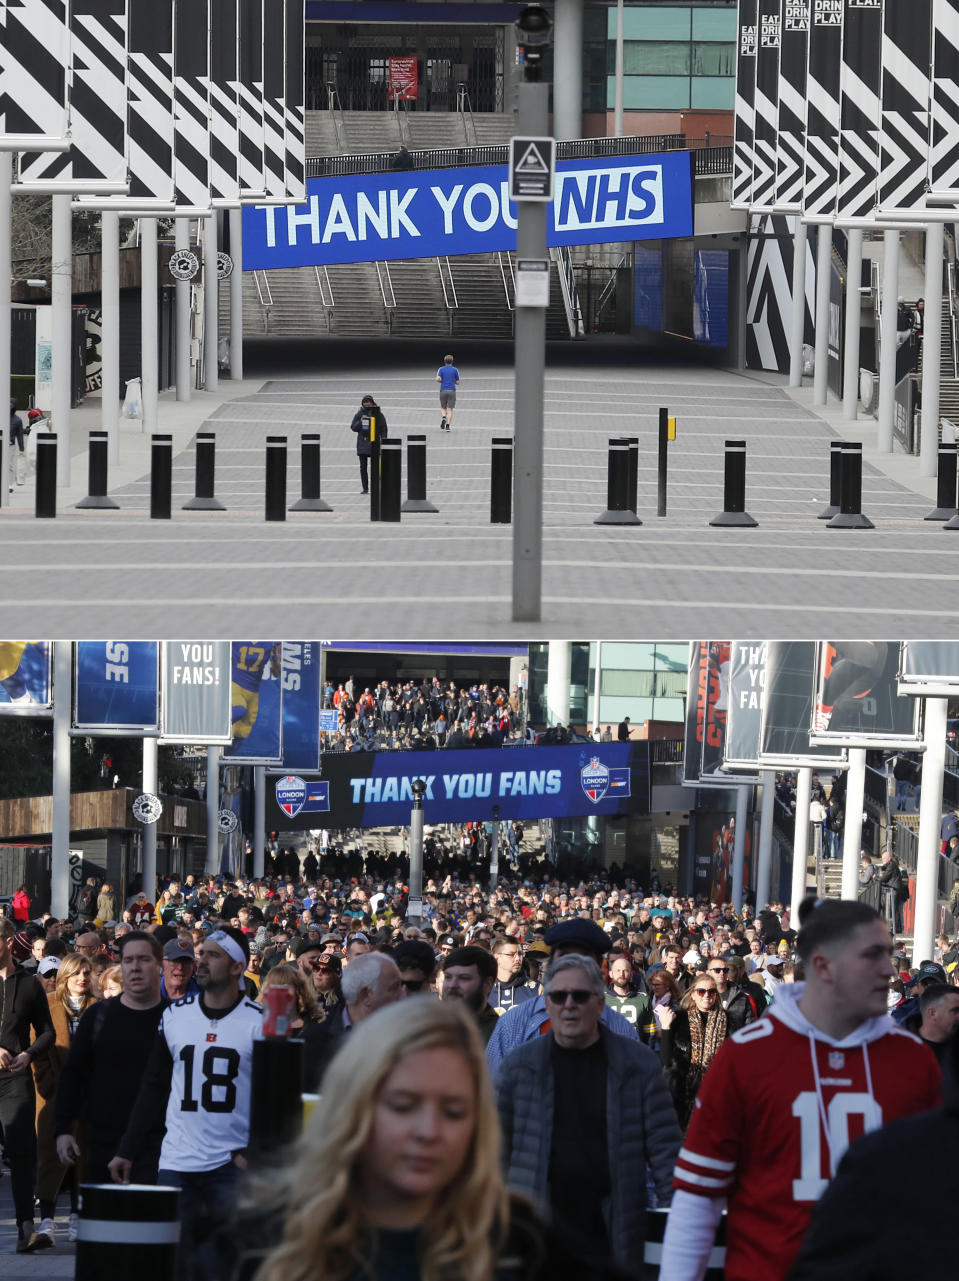 A combo of photos shows fans approaching Wembley Stadium before an NFL football game between the Los Angeles Rams and the Cincinnati Bengals on Sunday, Oct. 27, 2019, in London and an image showing an empty Wembley Way taken on Wednesday, April 1, 2020. (AP Photo/Frank Augstein)